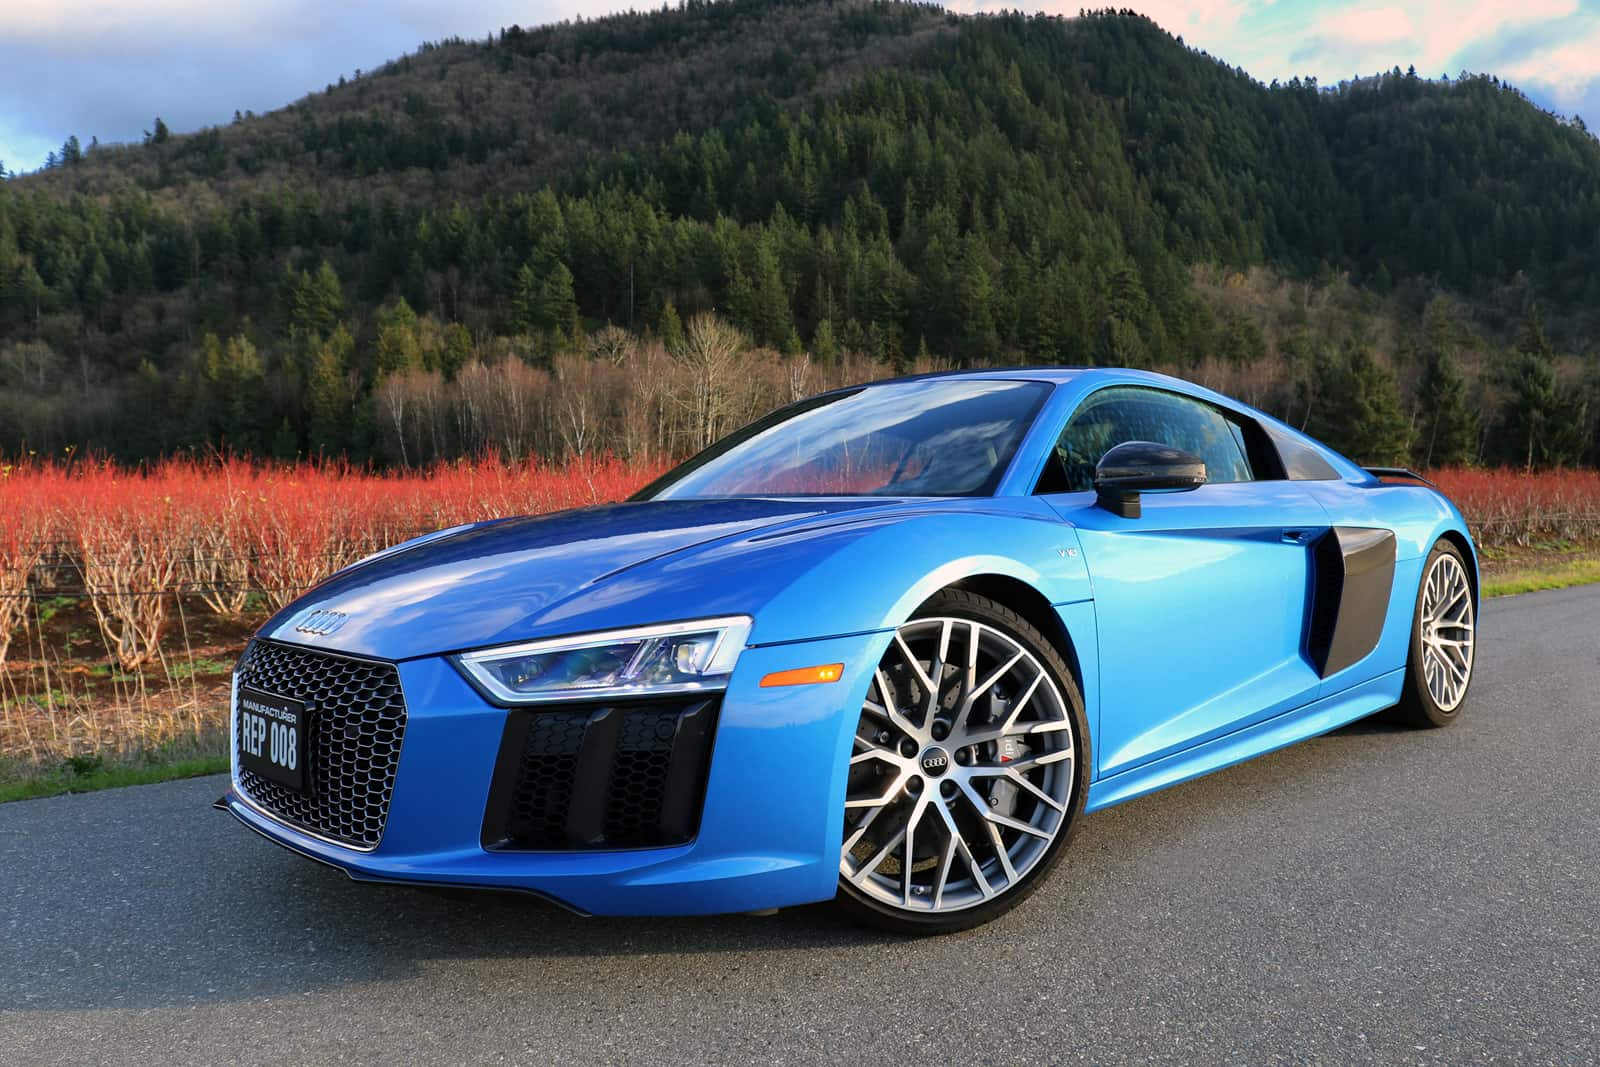 2017 audi r8 v10 plus review audi 39 s most powerful car. Black Bedroom Furniture Sets. Home Design Ideas